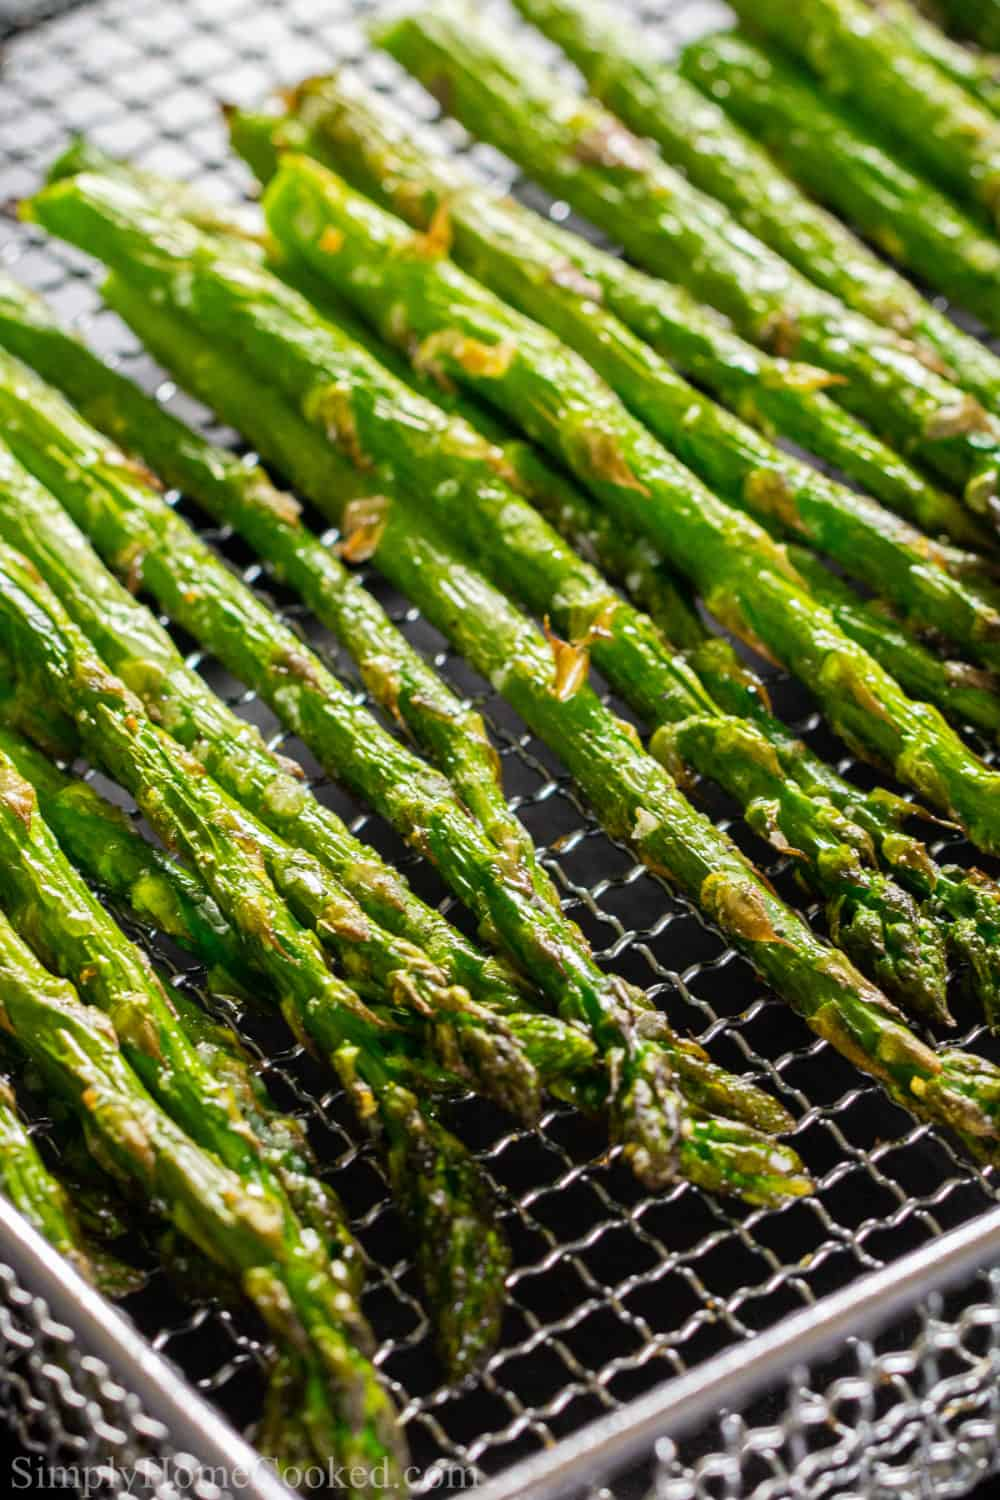 Asparagus spears lined up on a wire basket